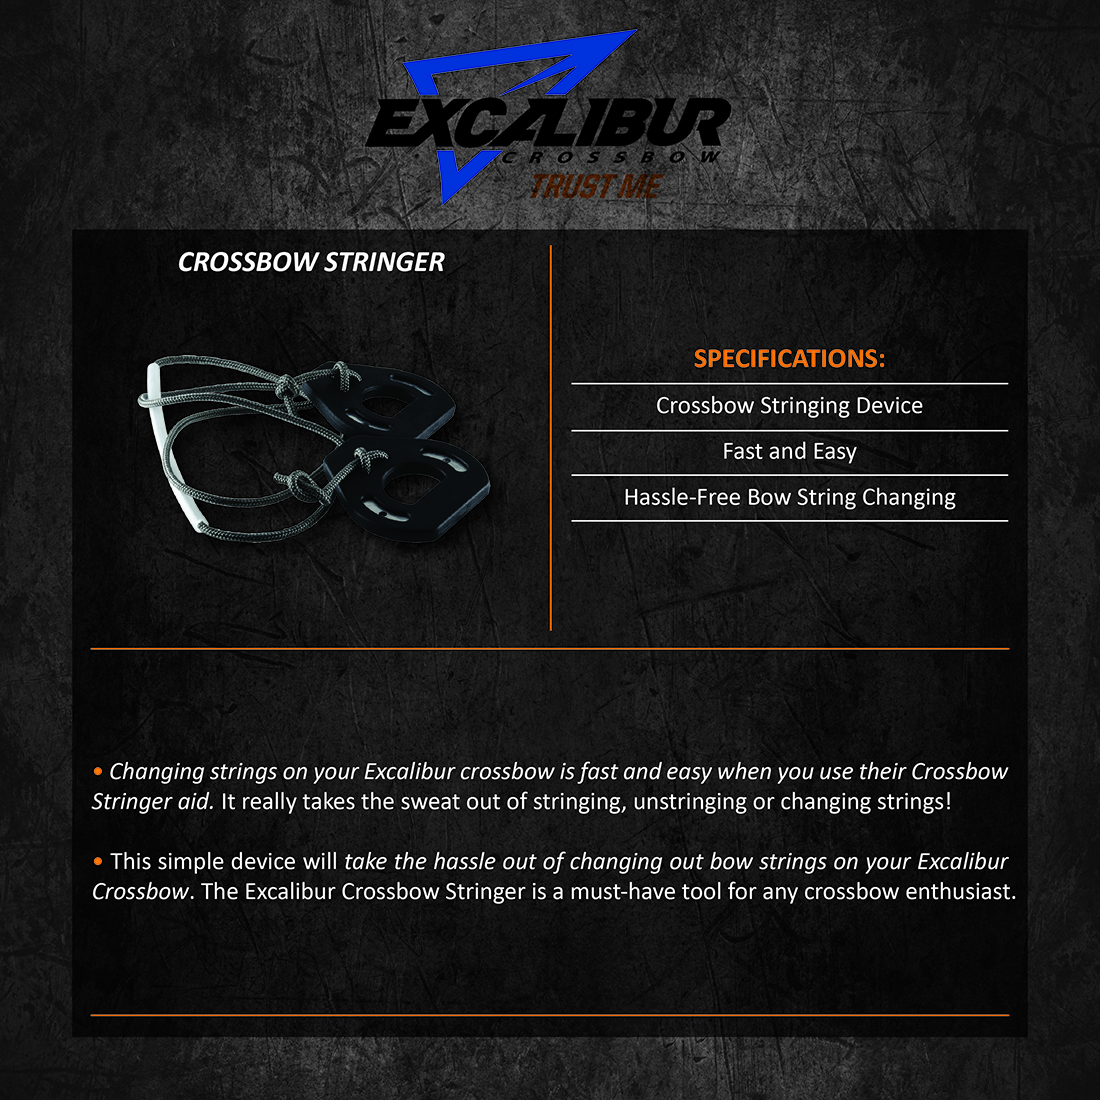 Excalibur_Crossbow_Stringer_Product_Description